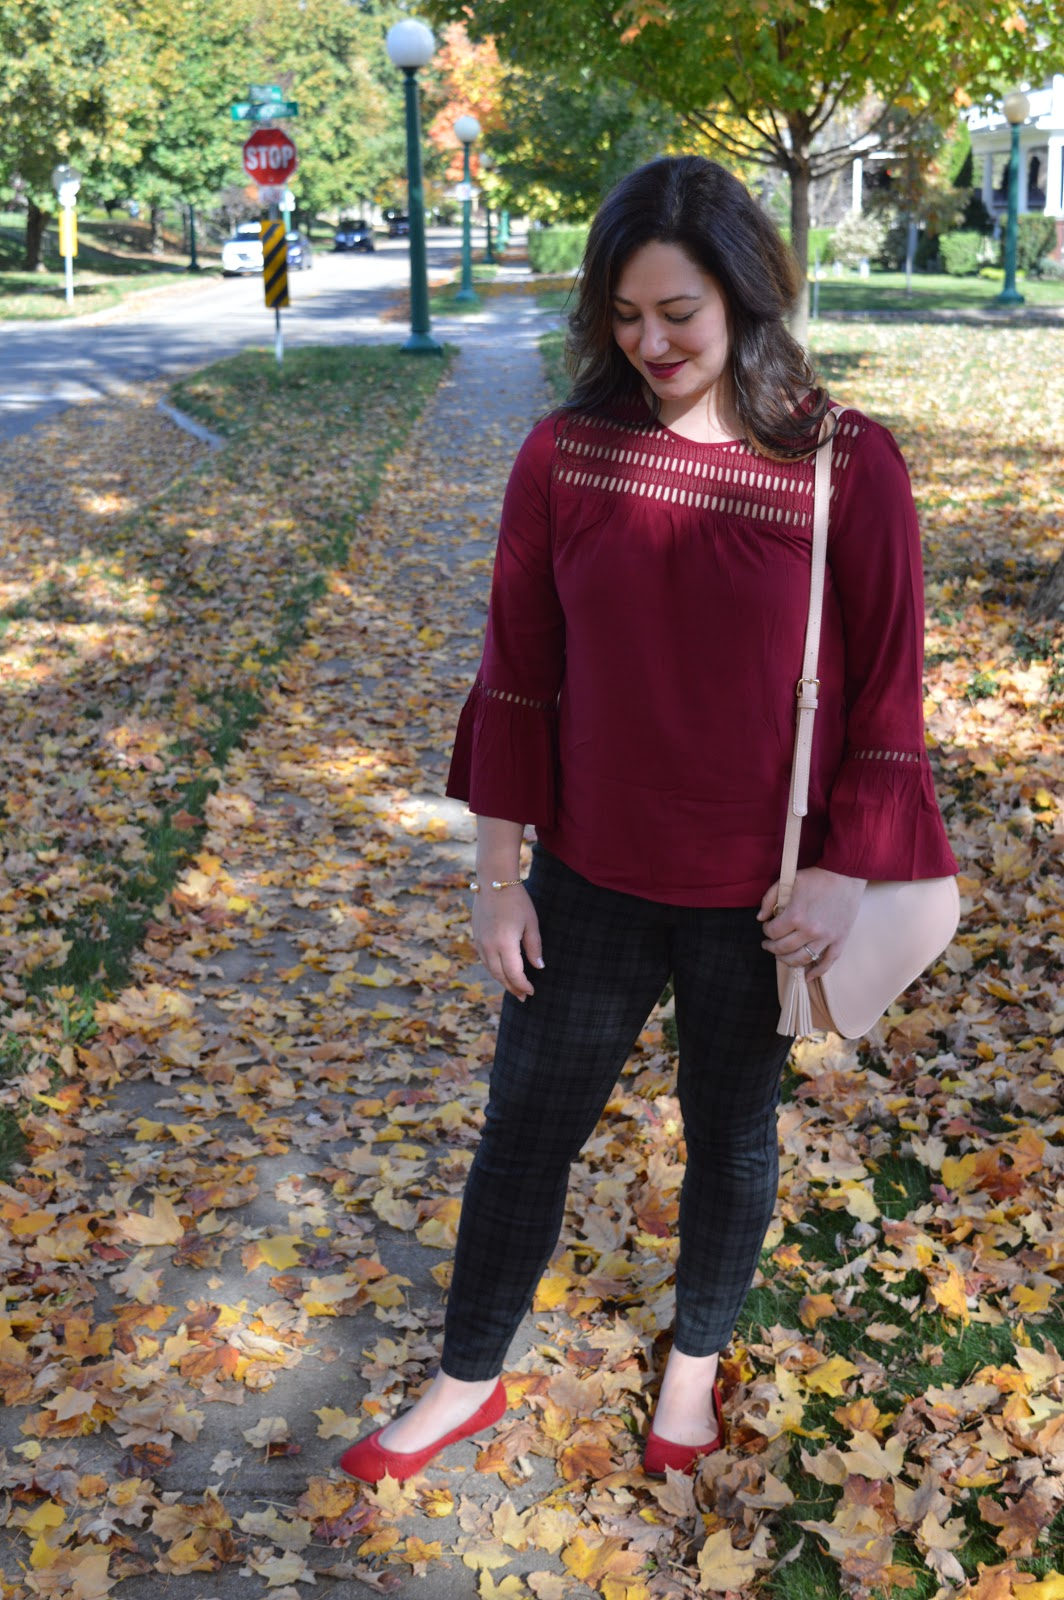 Bell sleeve outfit from Reitman's for fall